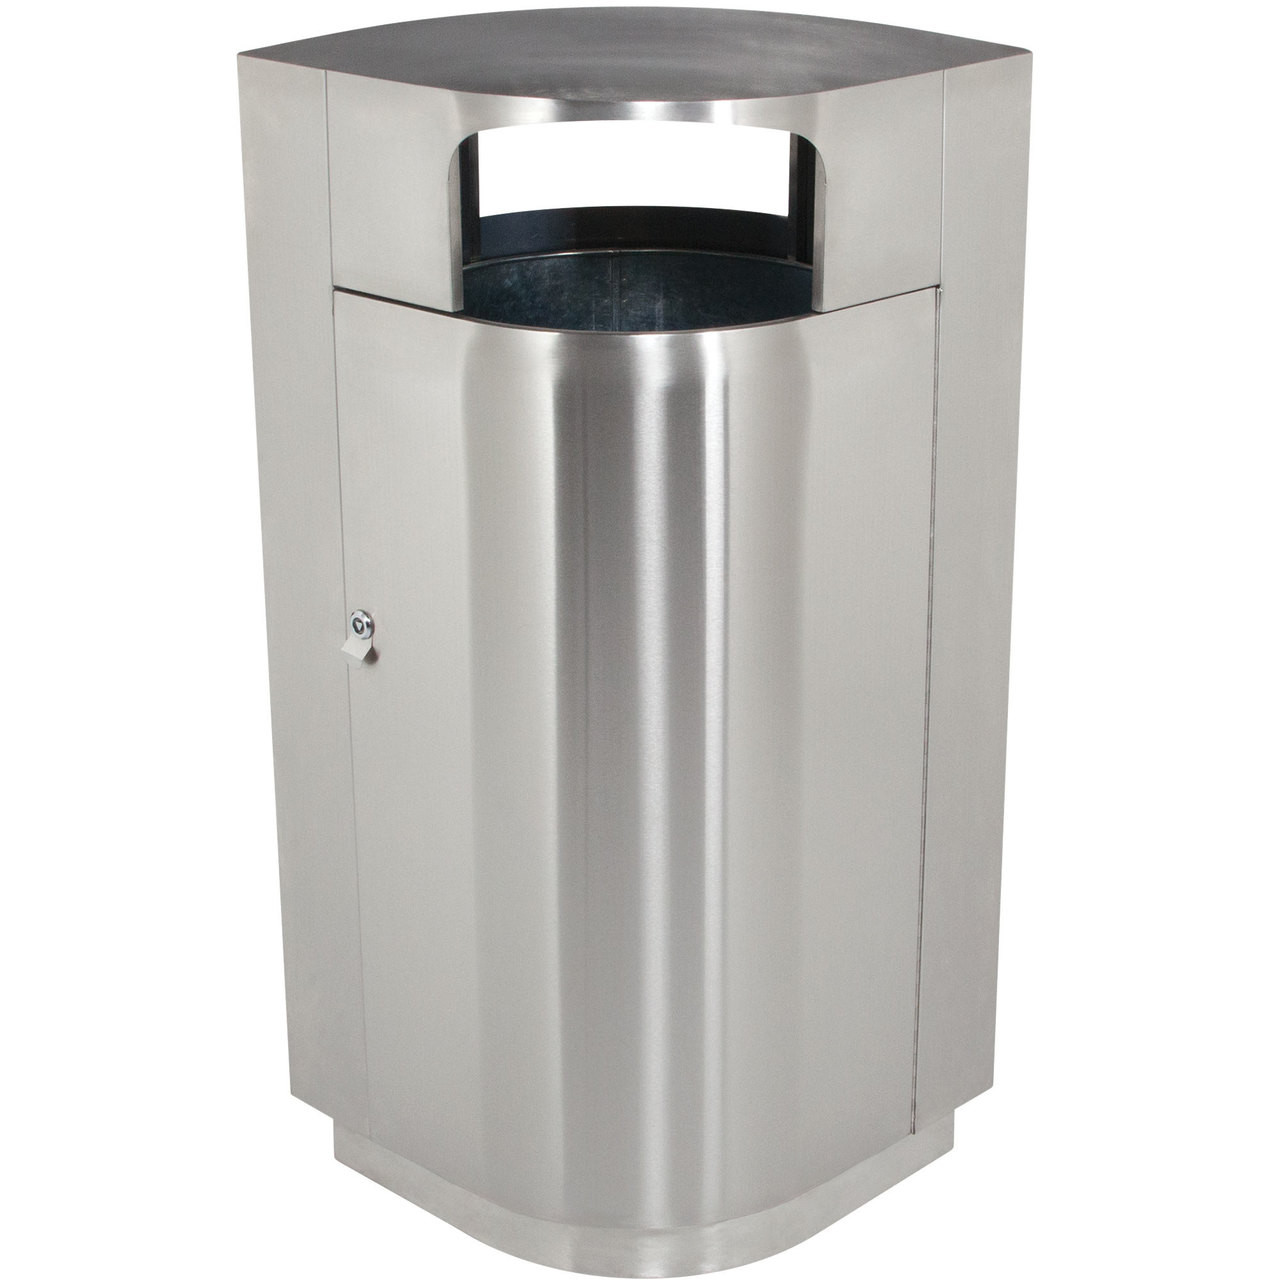 Cool Trash Bins 40 Gallon Leafview 2 Locking Stainless Steel Lockable Trash Can 782129